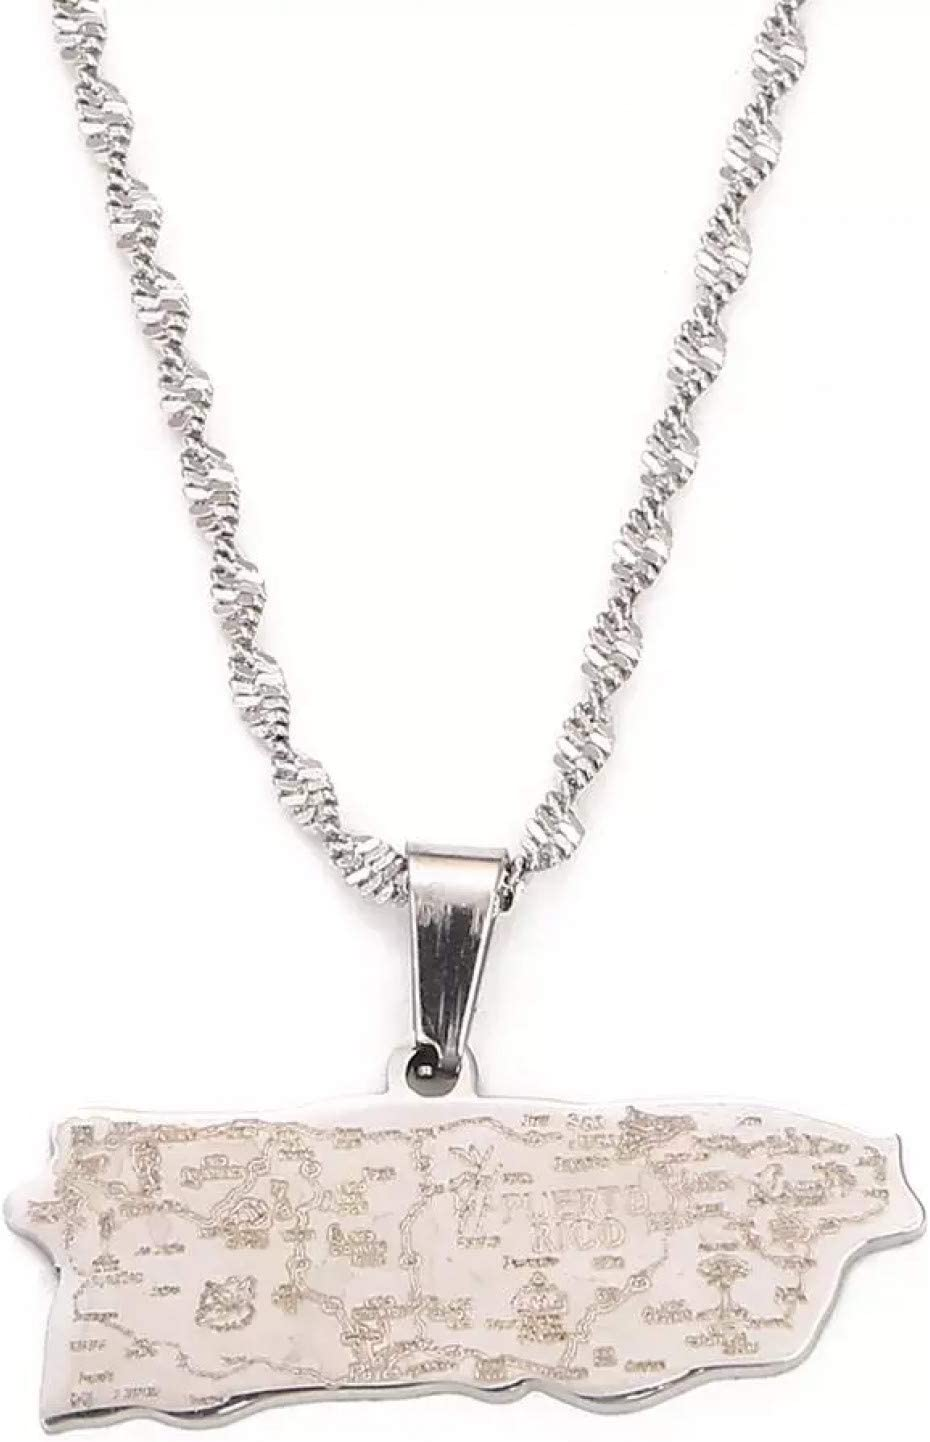 N A Necklace Pendant Stainless Color Steel Puerto Silver Max 85% OFF Rico Sacramento Mall